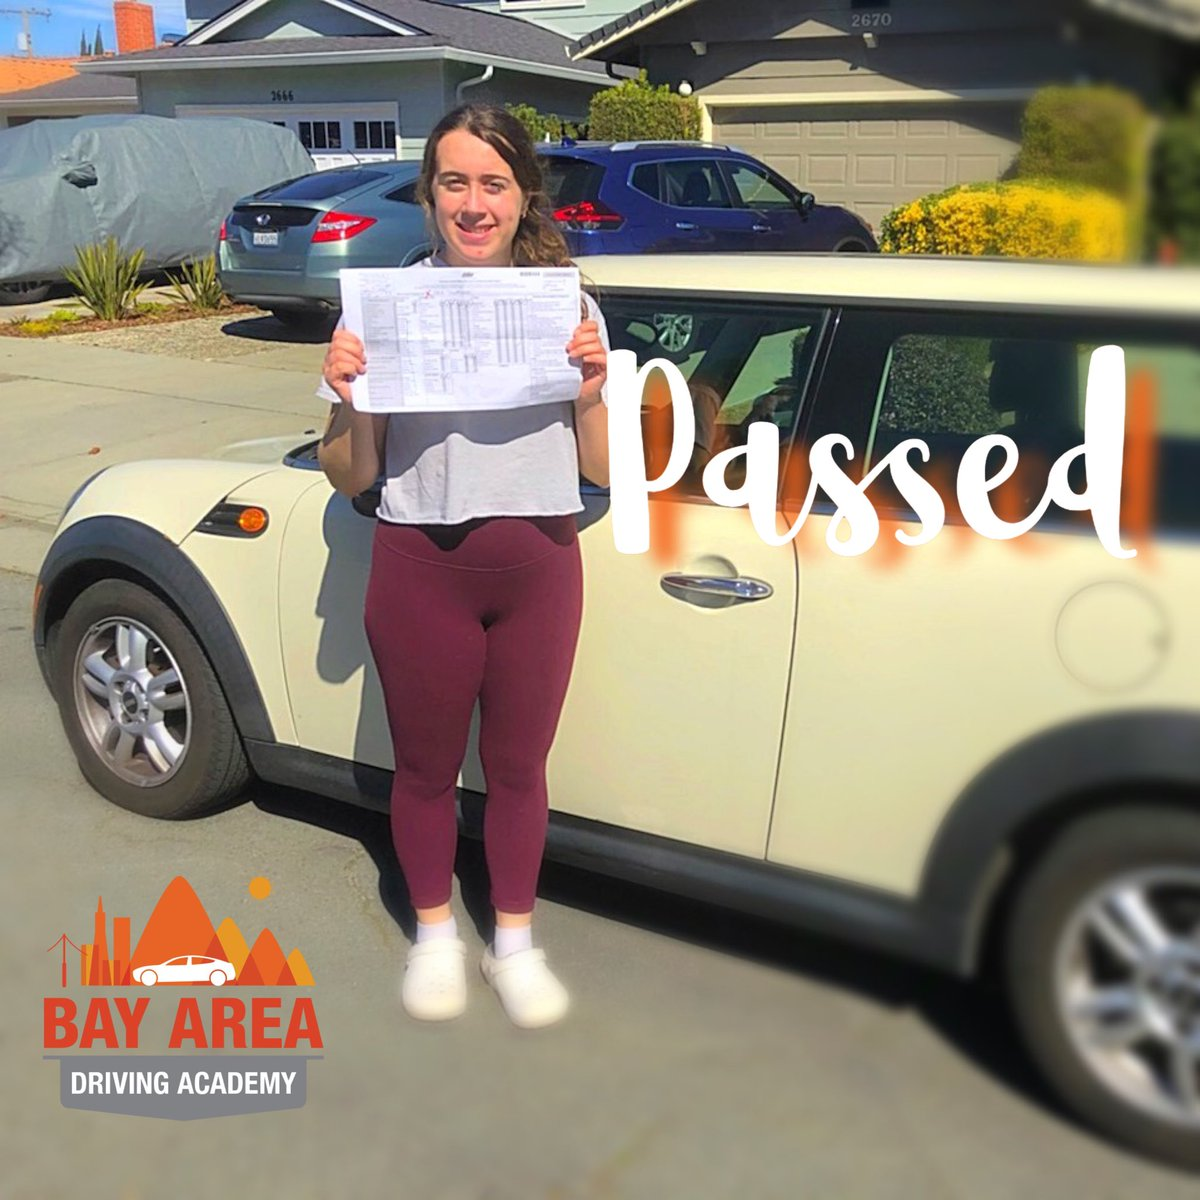 Congratulations to Sara on getting her California driver license recently!! #passed and ready for the #road 🏁 🚗 - woohoo 🎉! Get DMV ready and licensed with Bay Area Driving Academy! #badainc #driving #siliconvalley #bayarea #smallbusiness #motivation #mondaymotivation